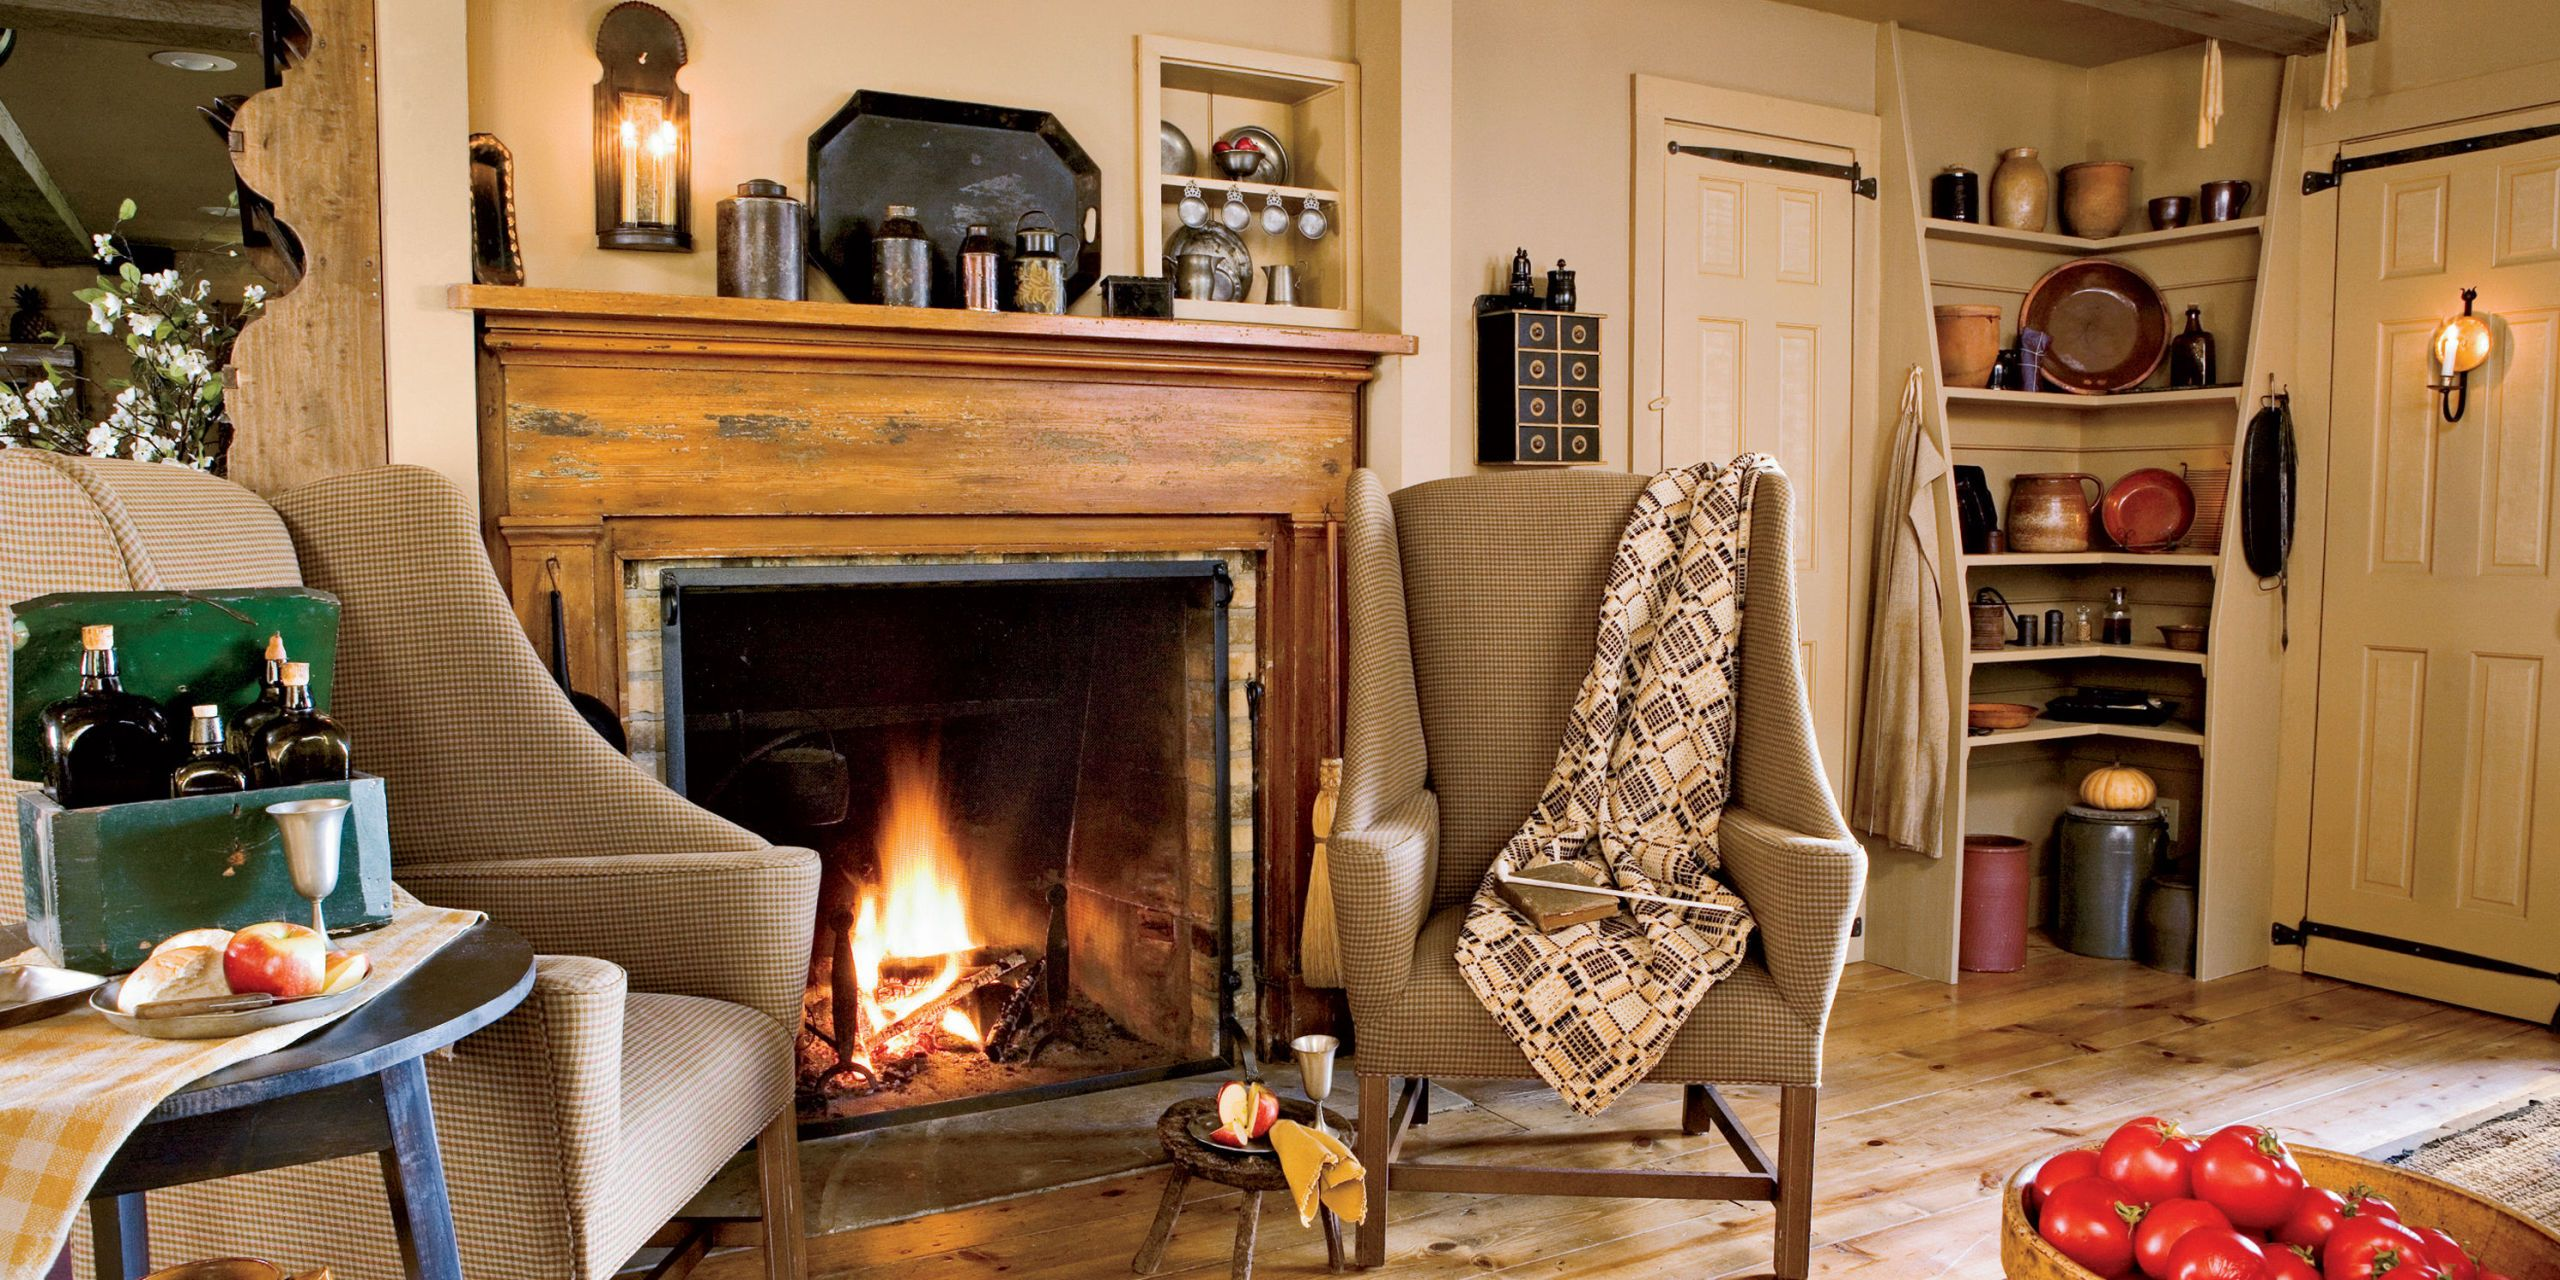 40  Fireplace Design Ideas   Fireplace Mantel Decorating Ideas Stone  slate  wood  and more  Get inspired to re do your living room with  our favorite fireplace designs and mantel ideas